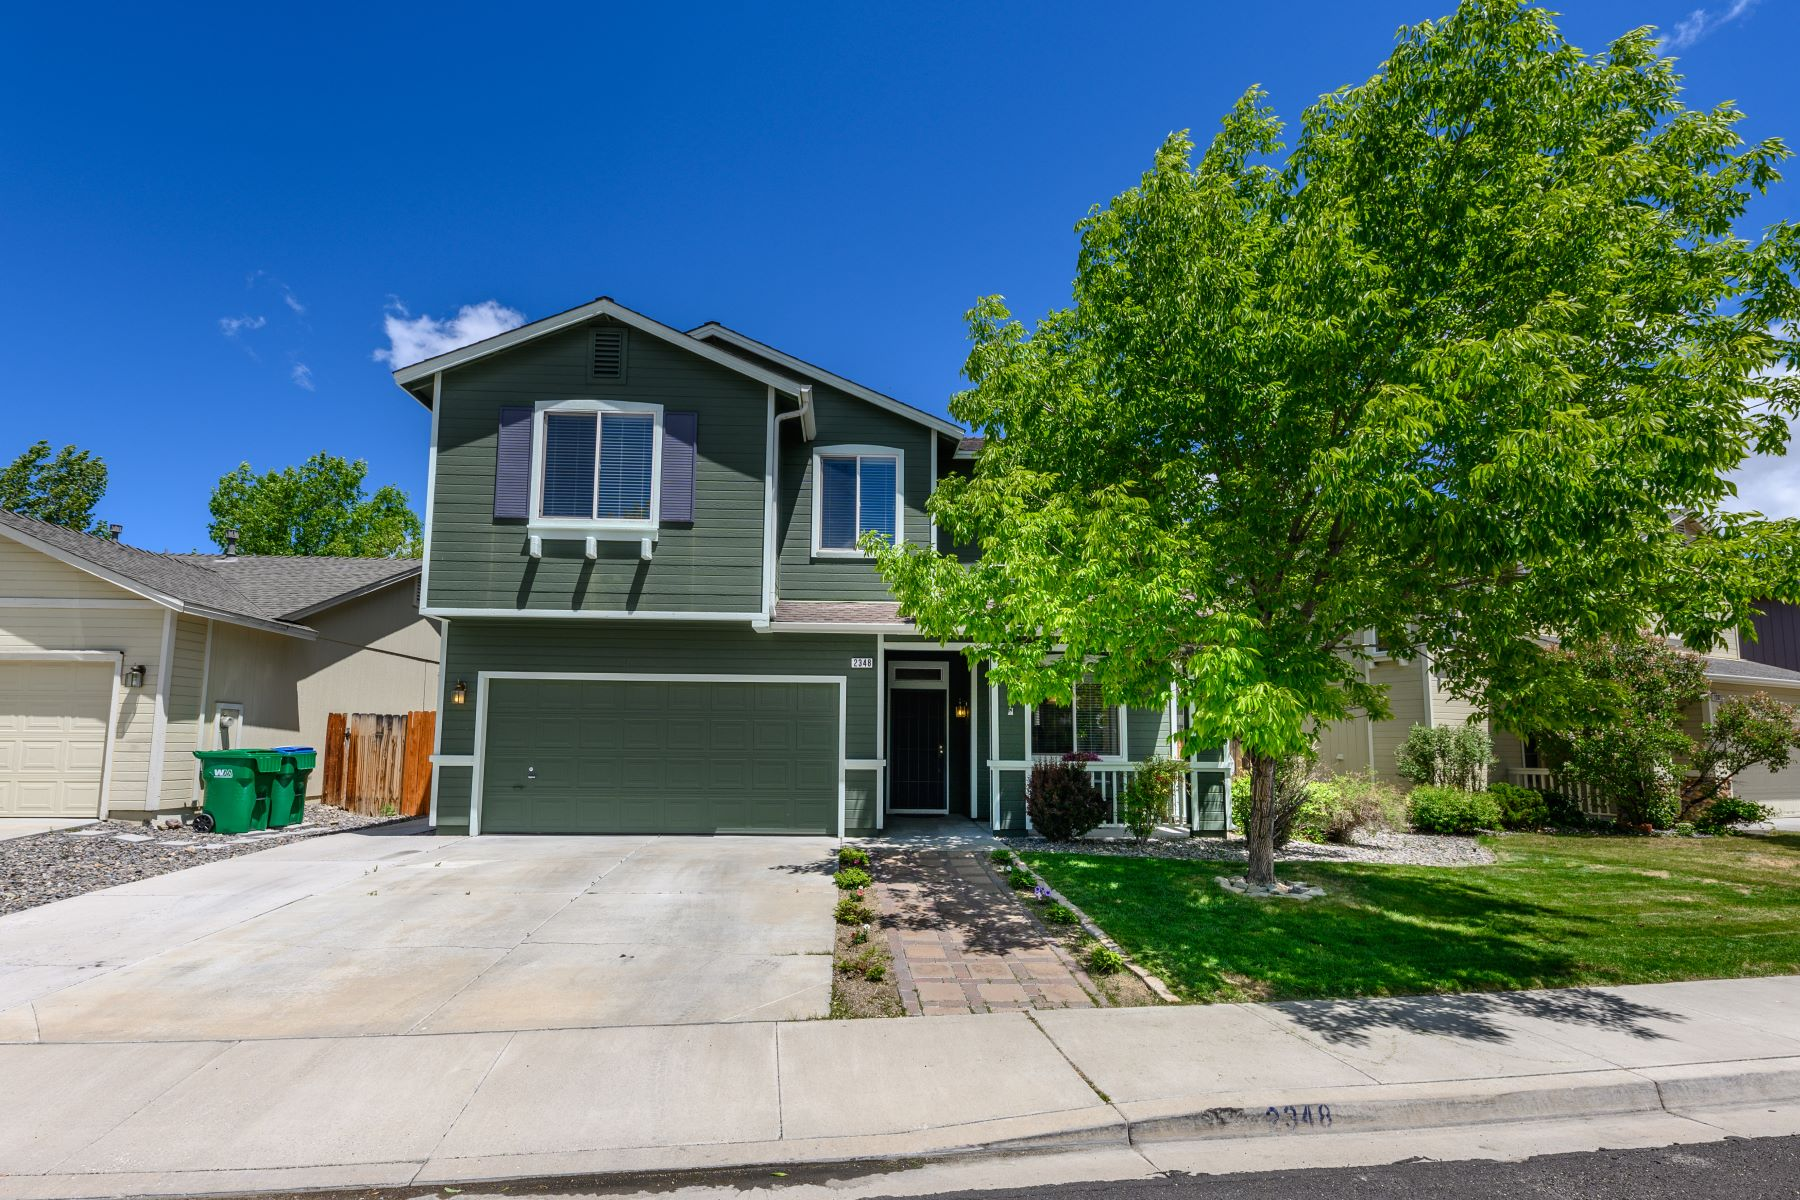 Single Family Homes for Active at 2348 Crestone Drive, Reno, Nevada 2348 Crestone Drive Reno, Nevada 89523 United States